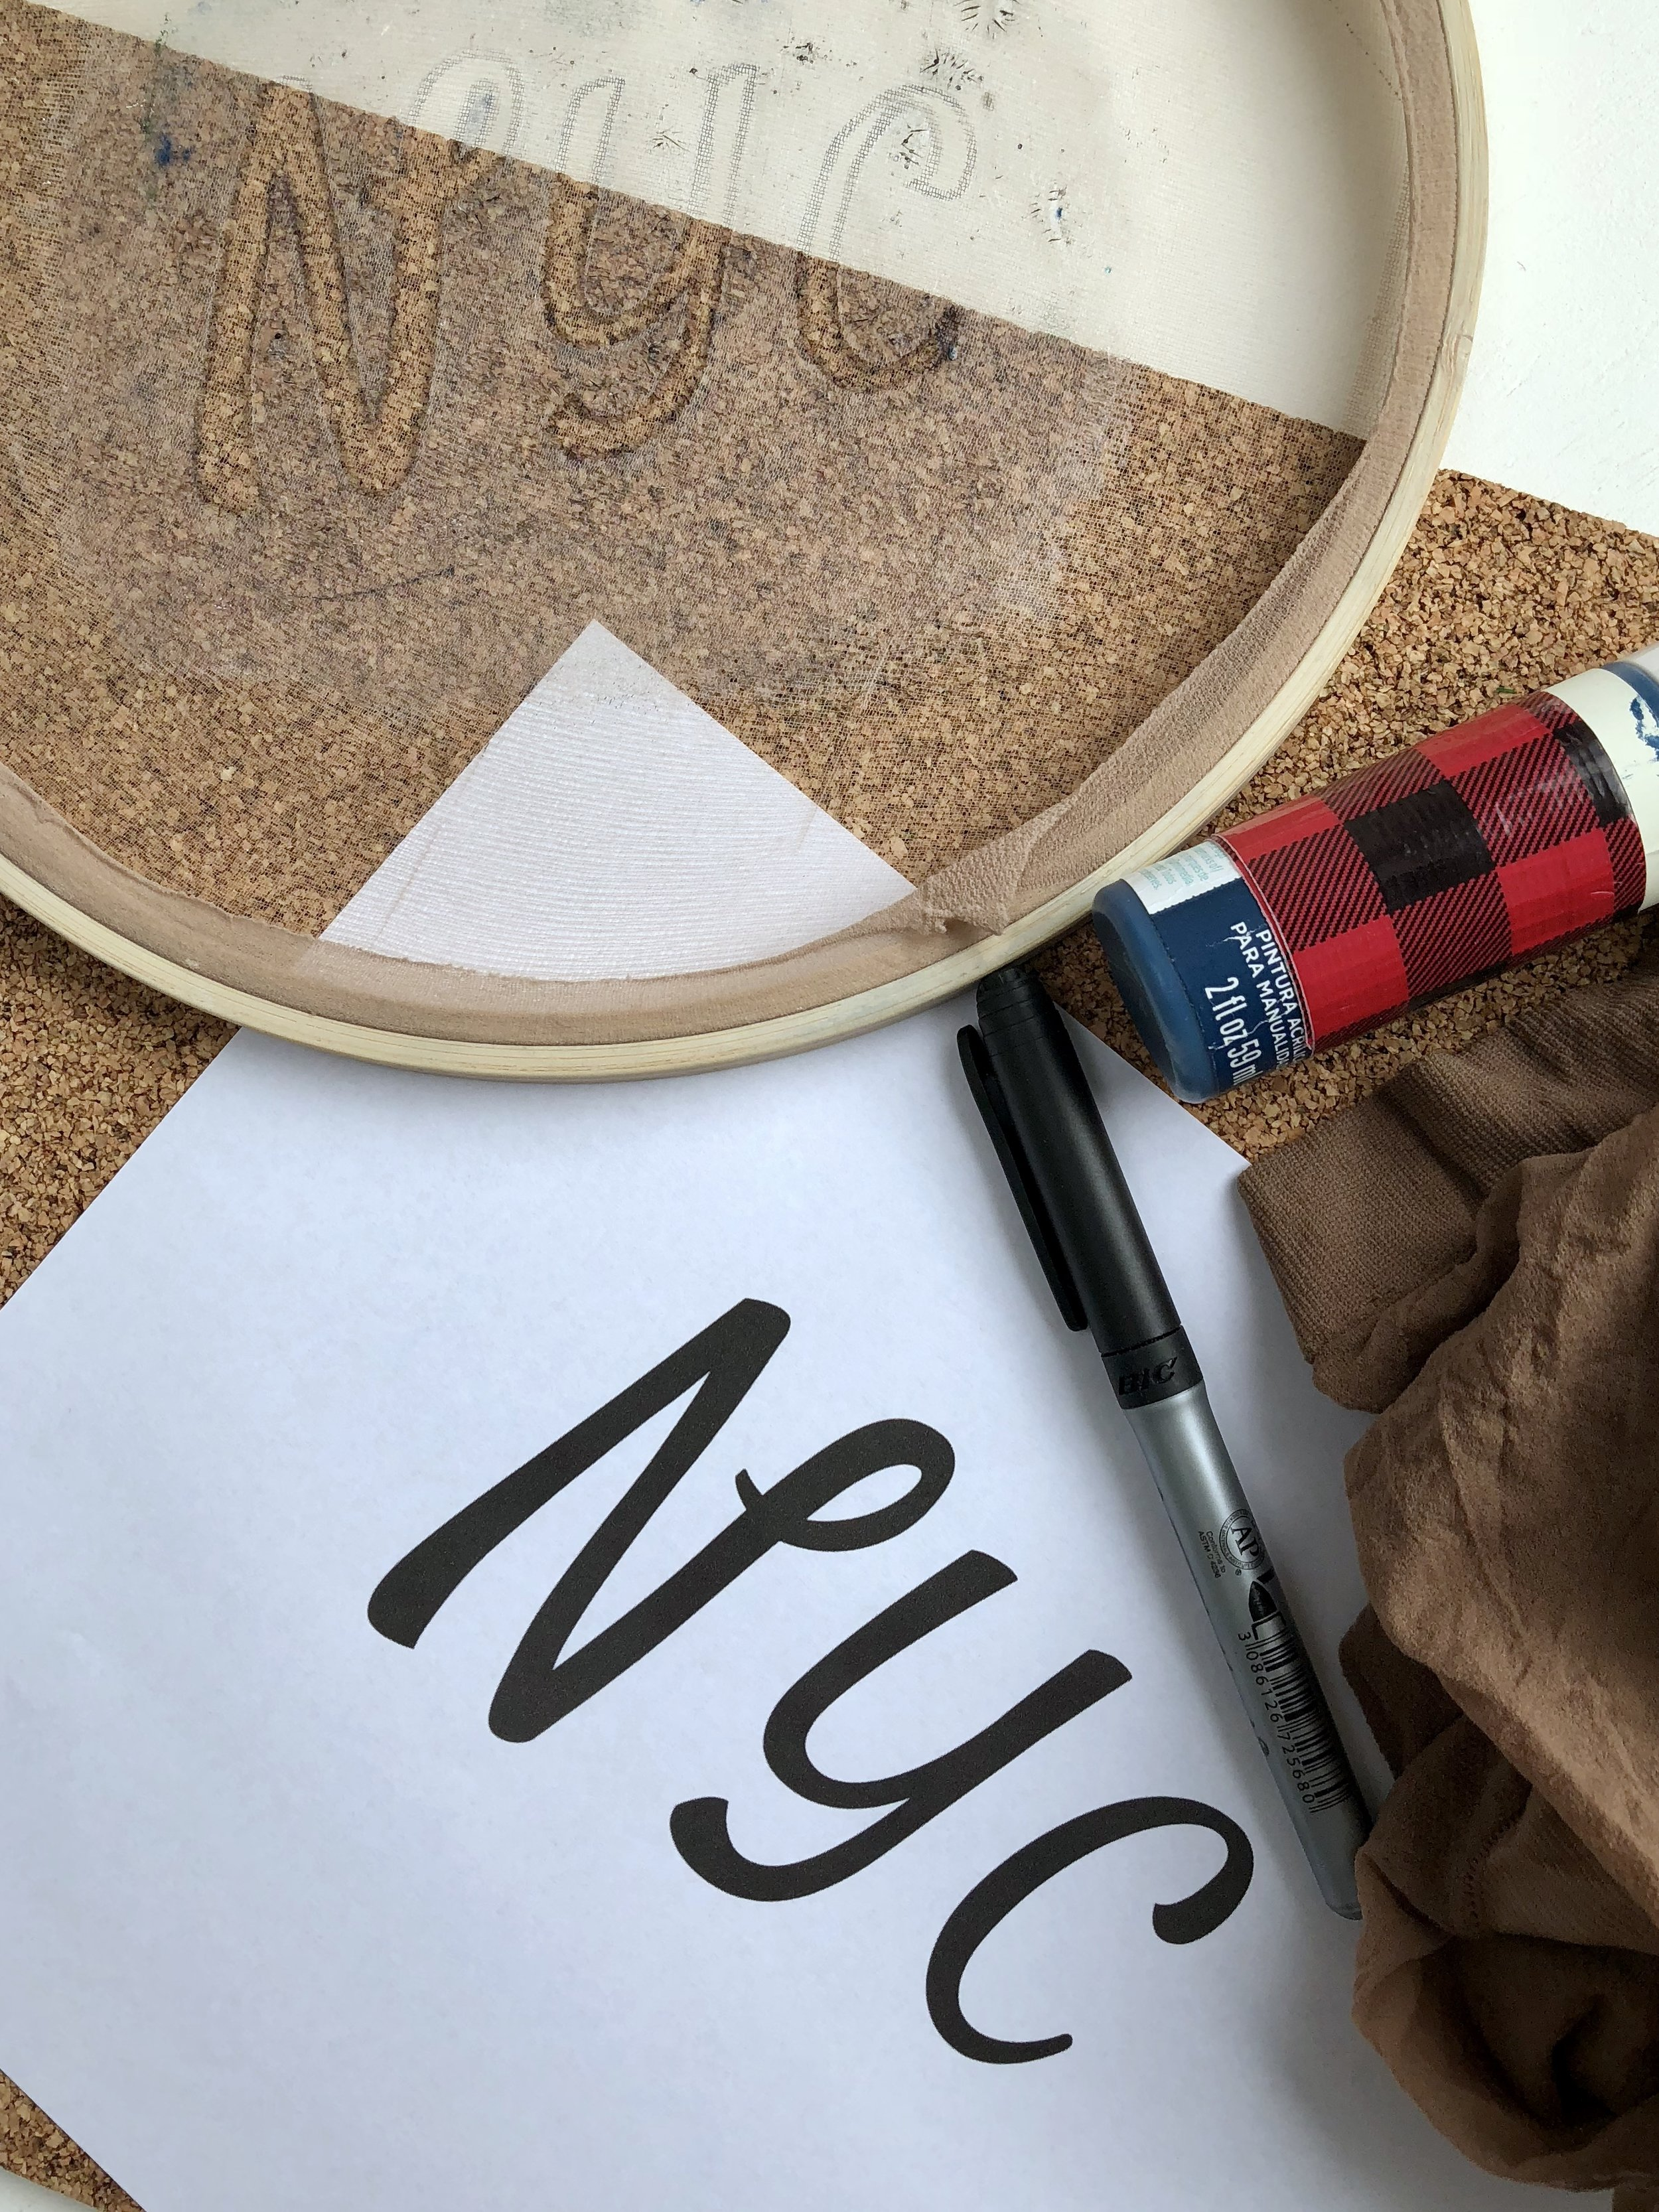 DIY Silk Screen Printing with an embroidery hoop and vintage pennants made from cork board and felt.